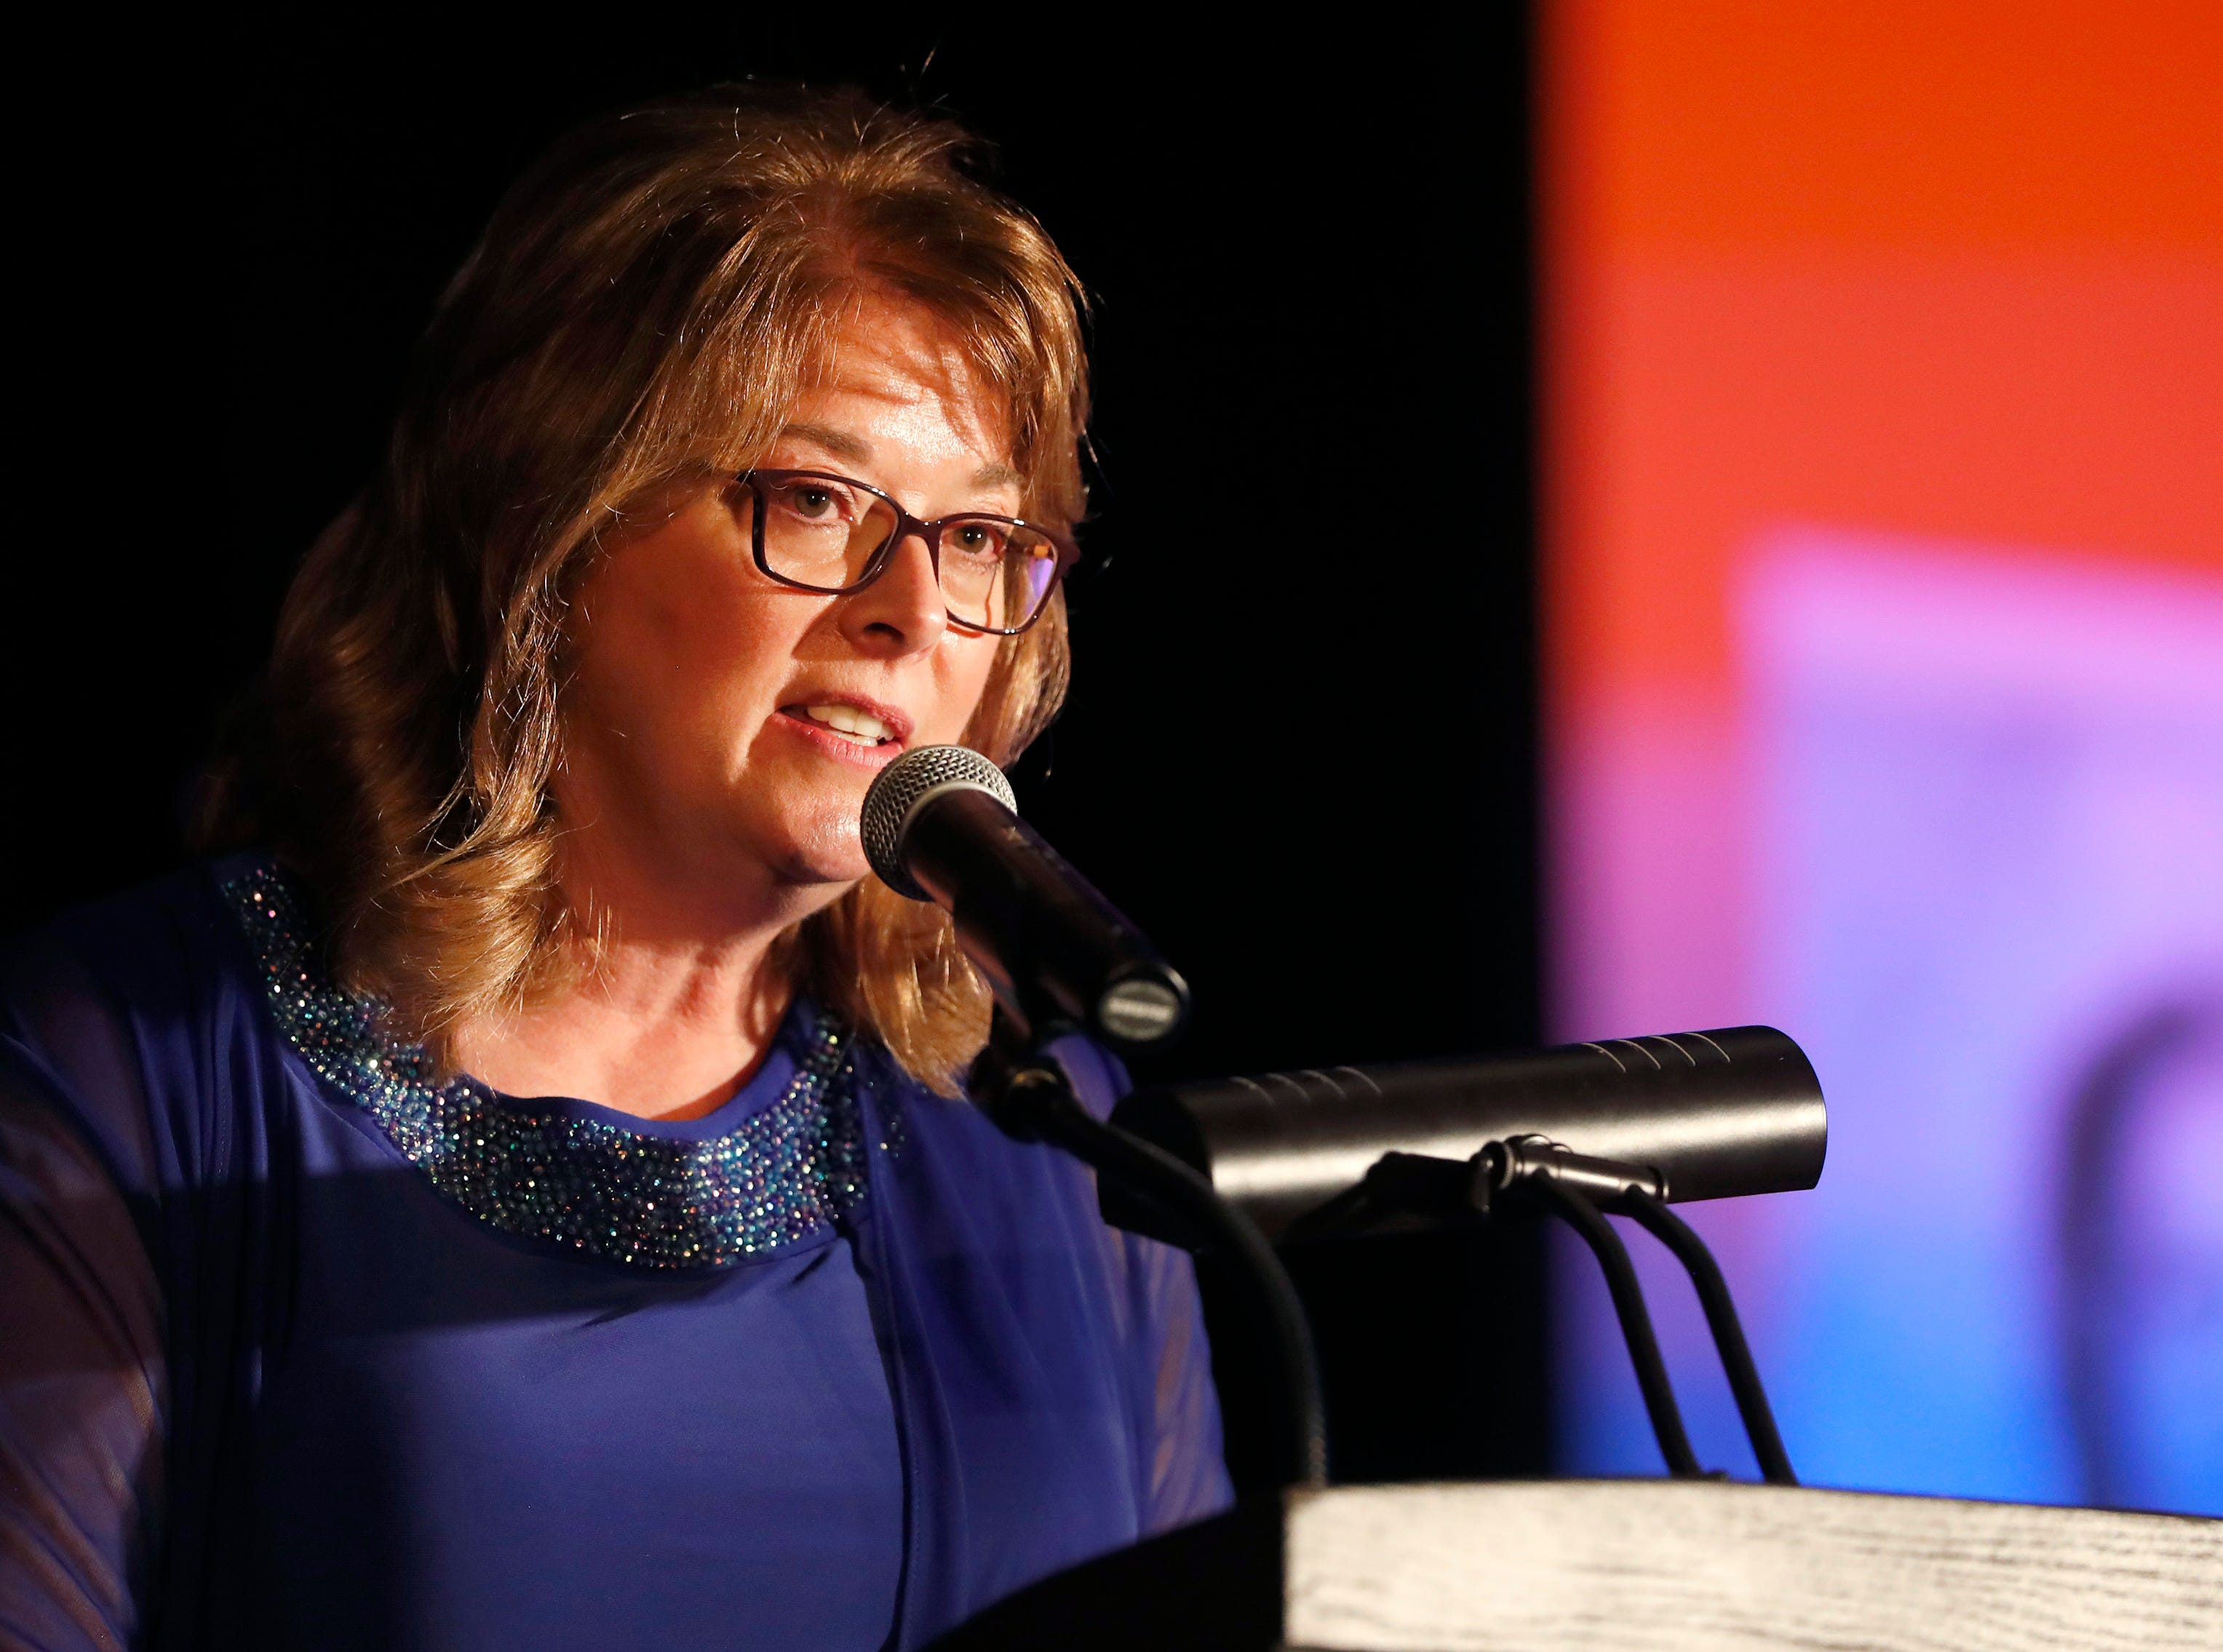 Cindy Reffke gives a speech after accepting the Janet Berry Volunteer of the Year Award during the 22nd Annual Celebrating Volunteers Community Gala Wednesday, May 1, 2019, at the Red Lion Hotel Paper Valley in Appleton, Wis. Danny Damiani/USA TODAY NETWORK-Wisconsin